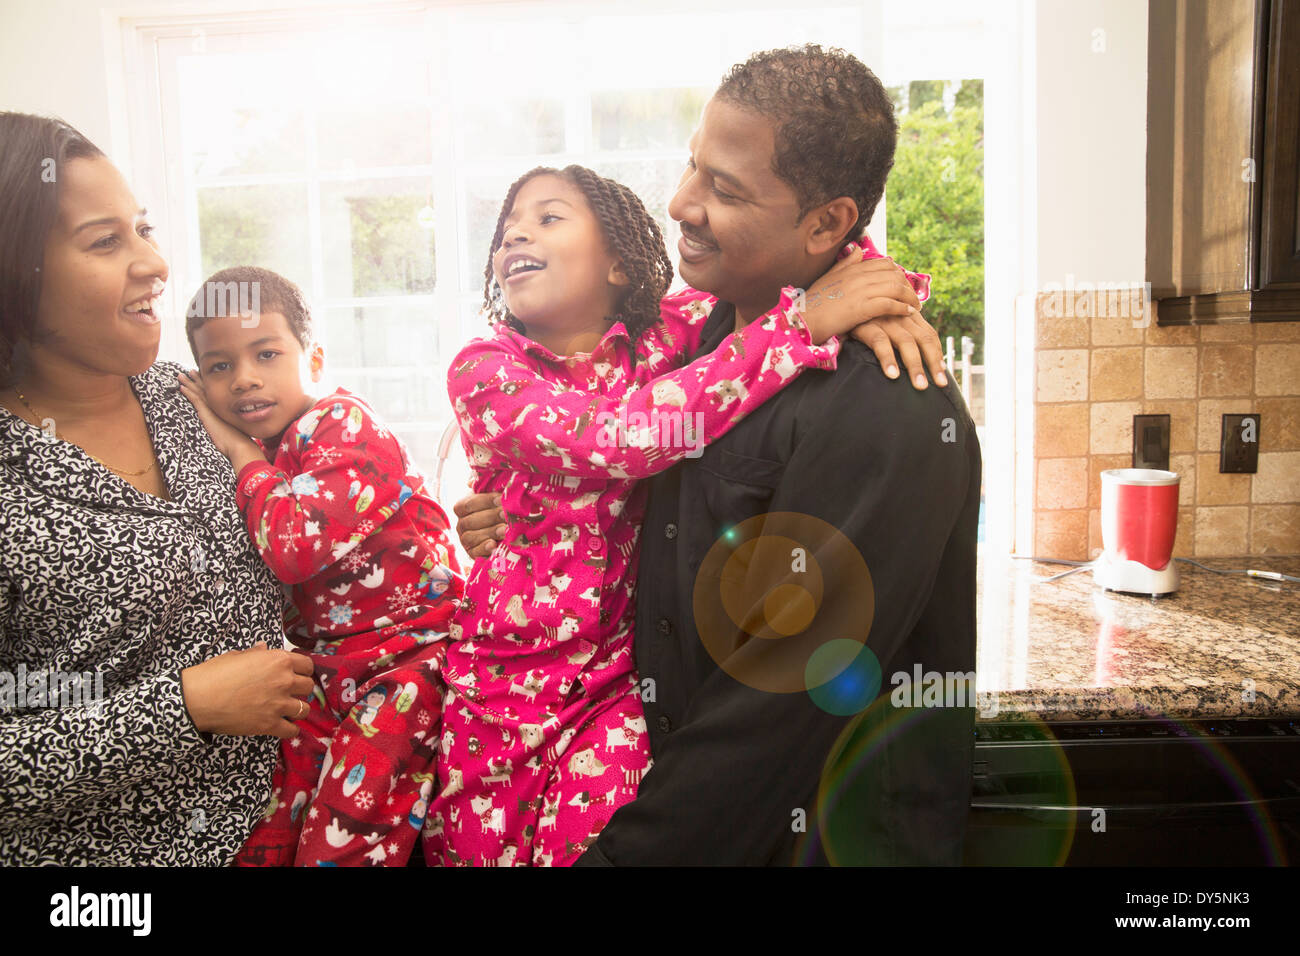 Mid adult couple and children in kitchen - Stock Image